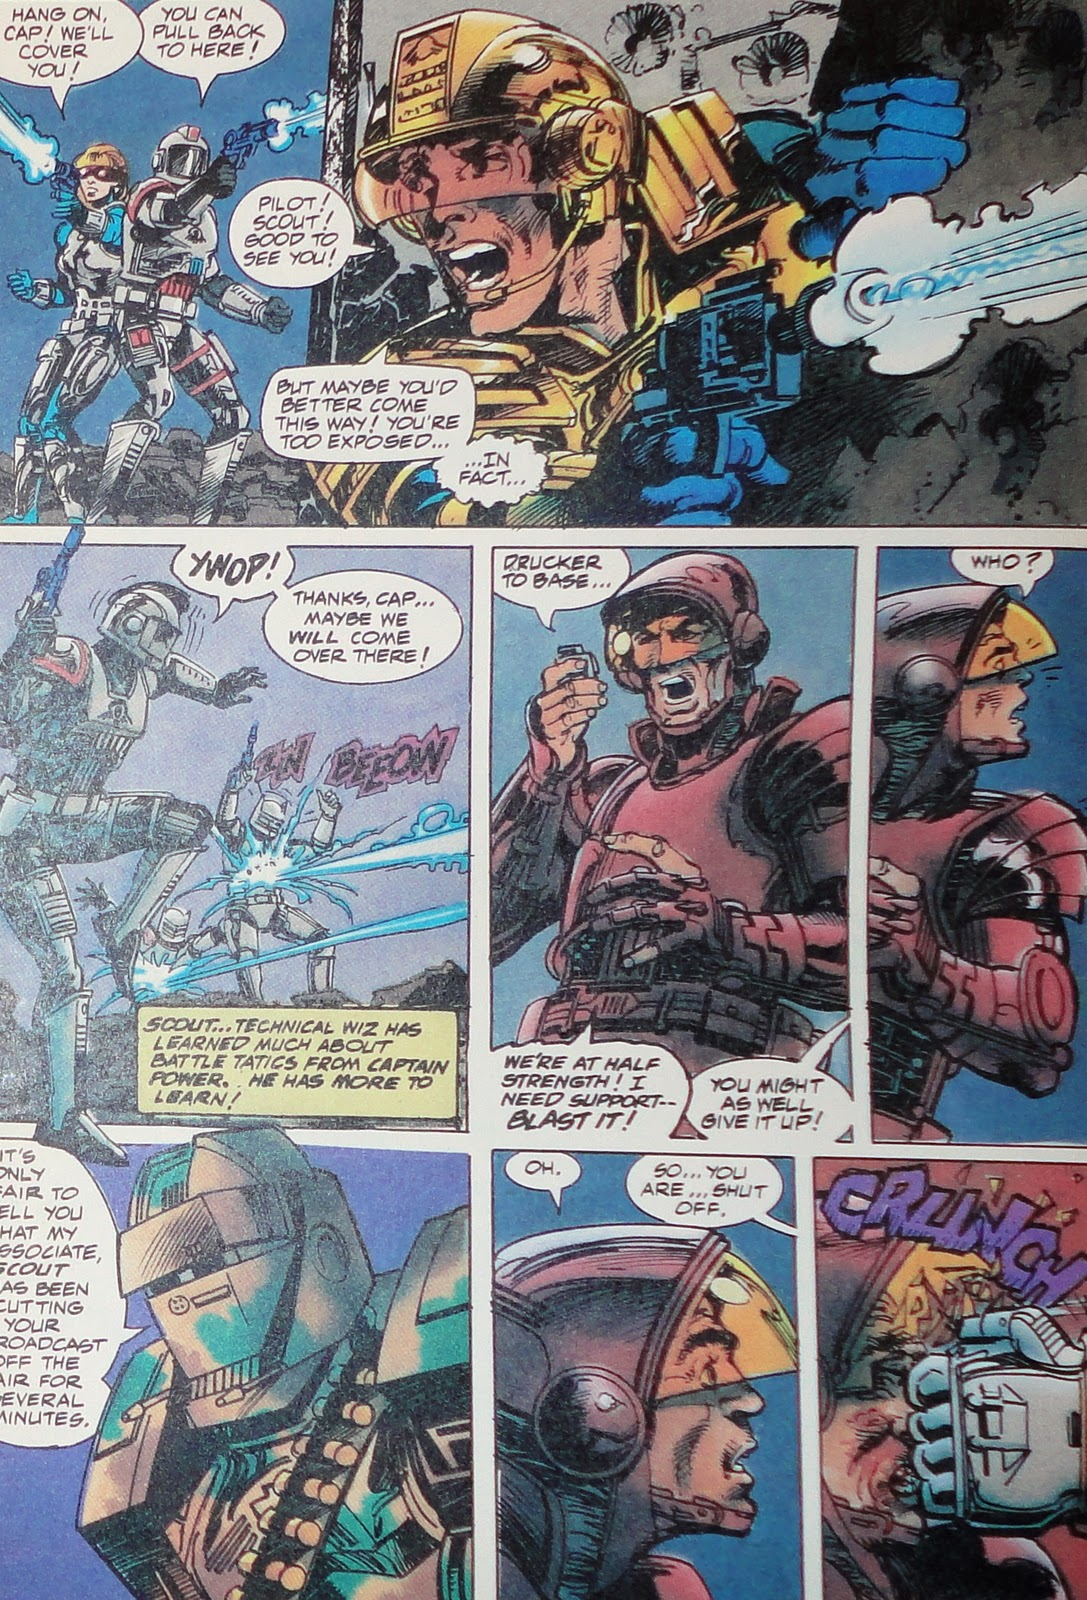 comics power captain future christmas soldiers continuity cheer whatever gods there 1988 august